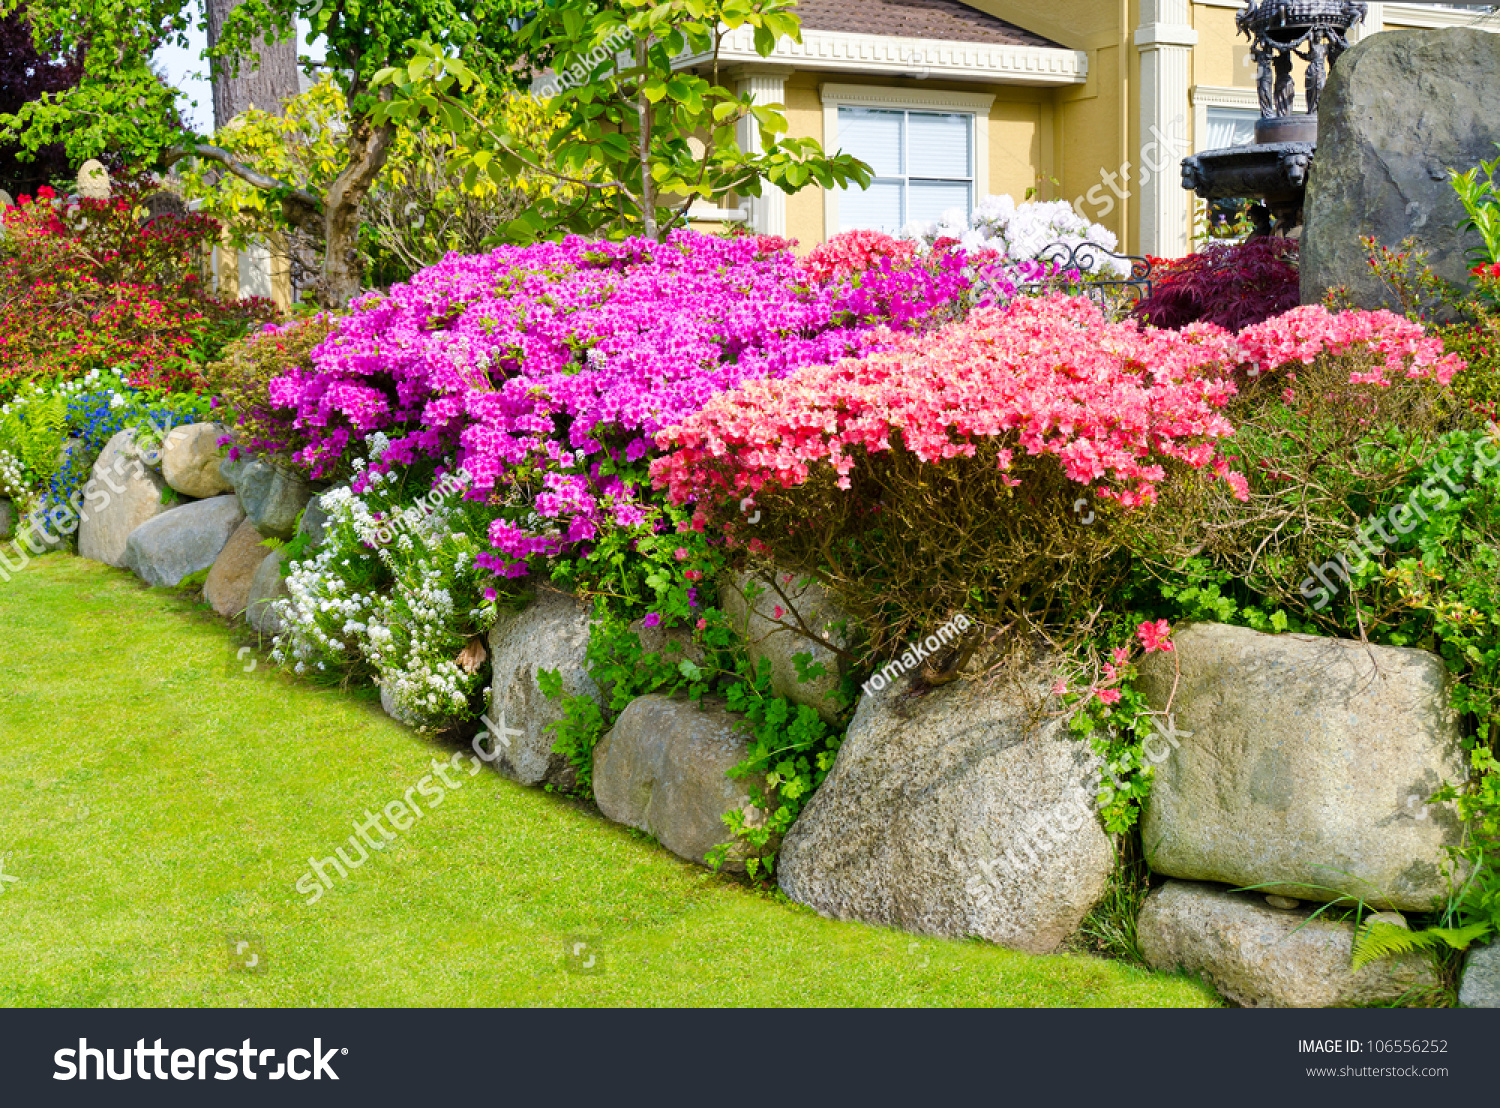 Flowers stones front house front yard stock photo for Design and landscape